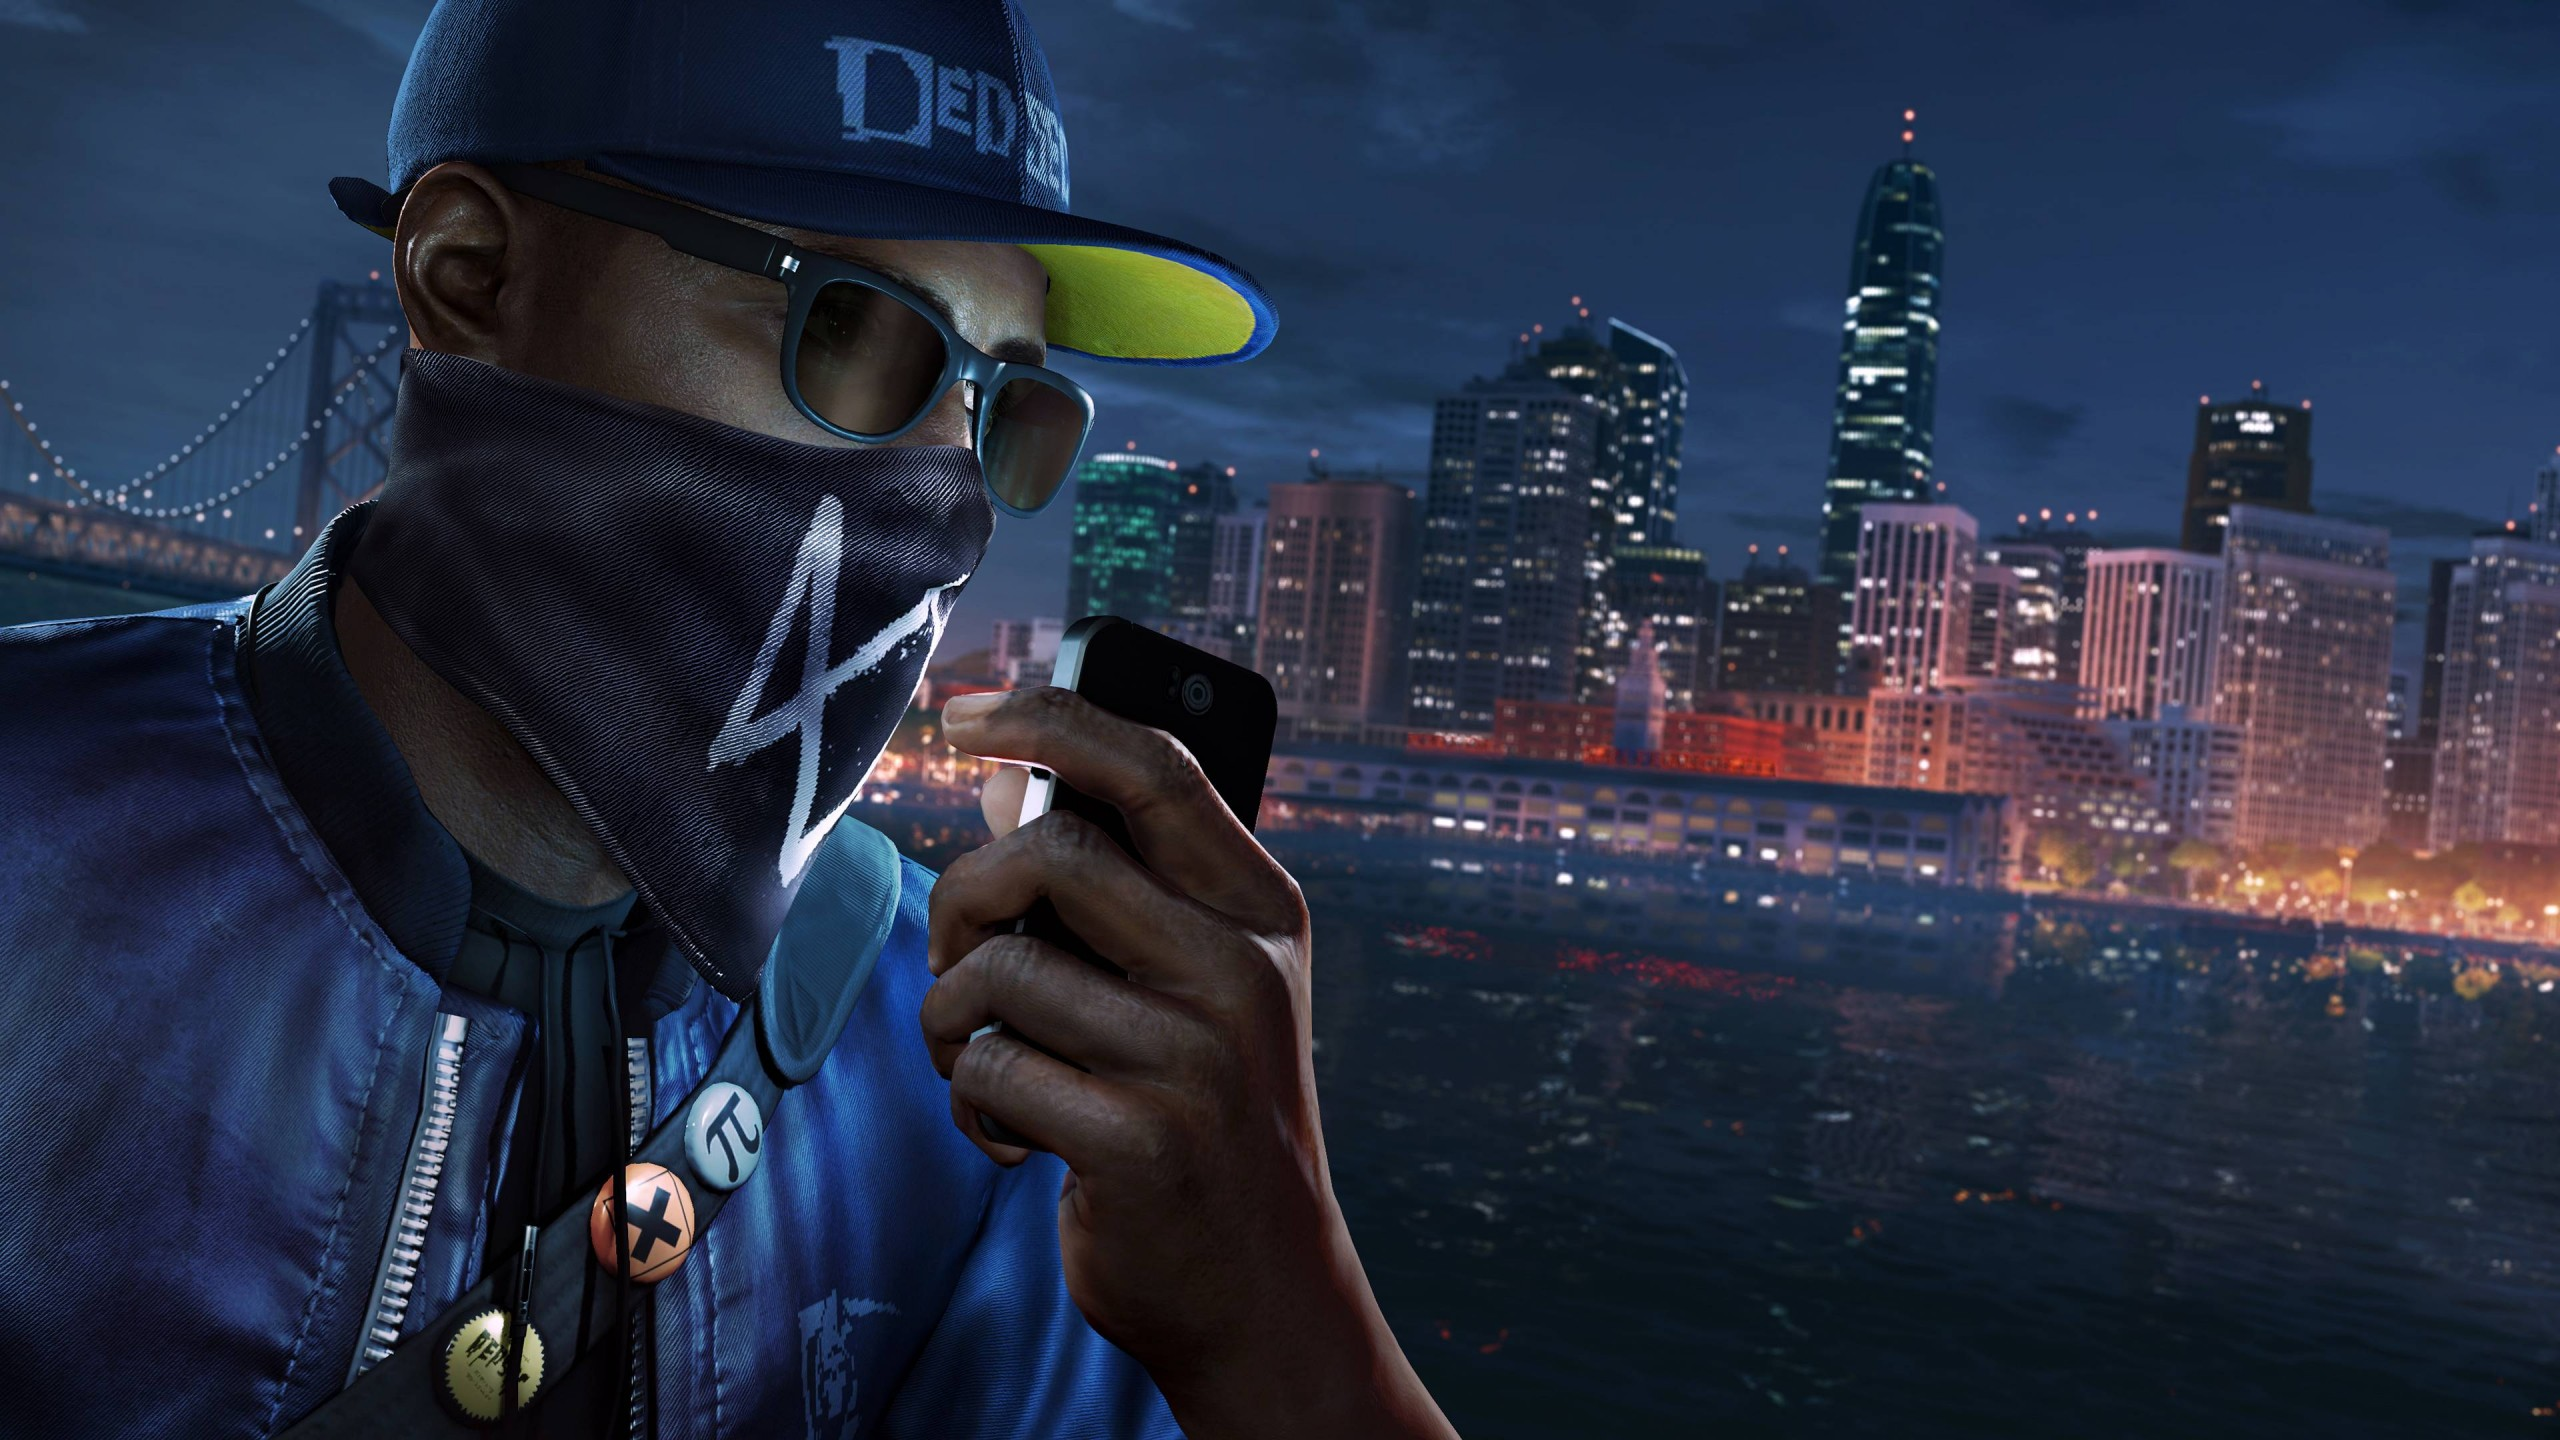 watch dogs 2 4k computer wallpaper 1350